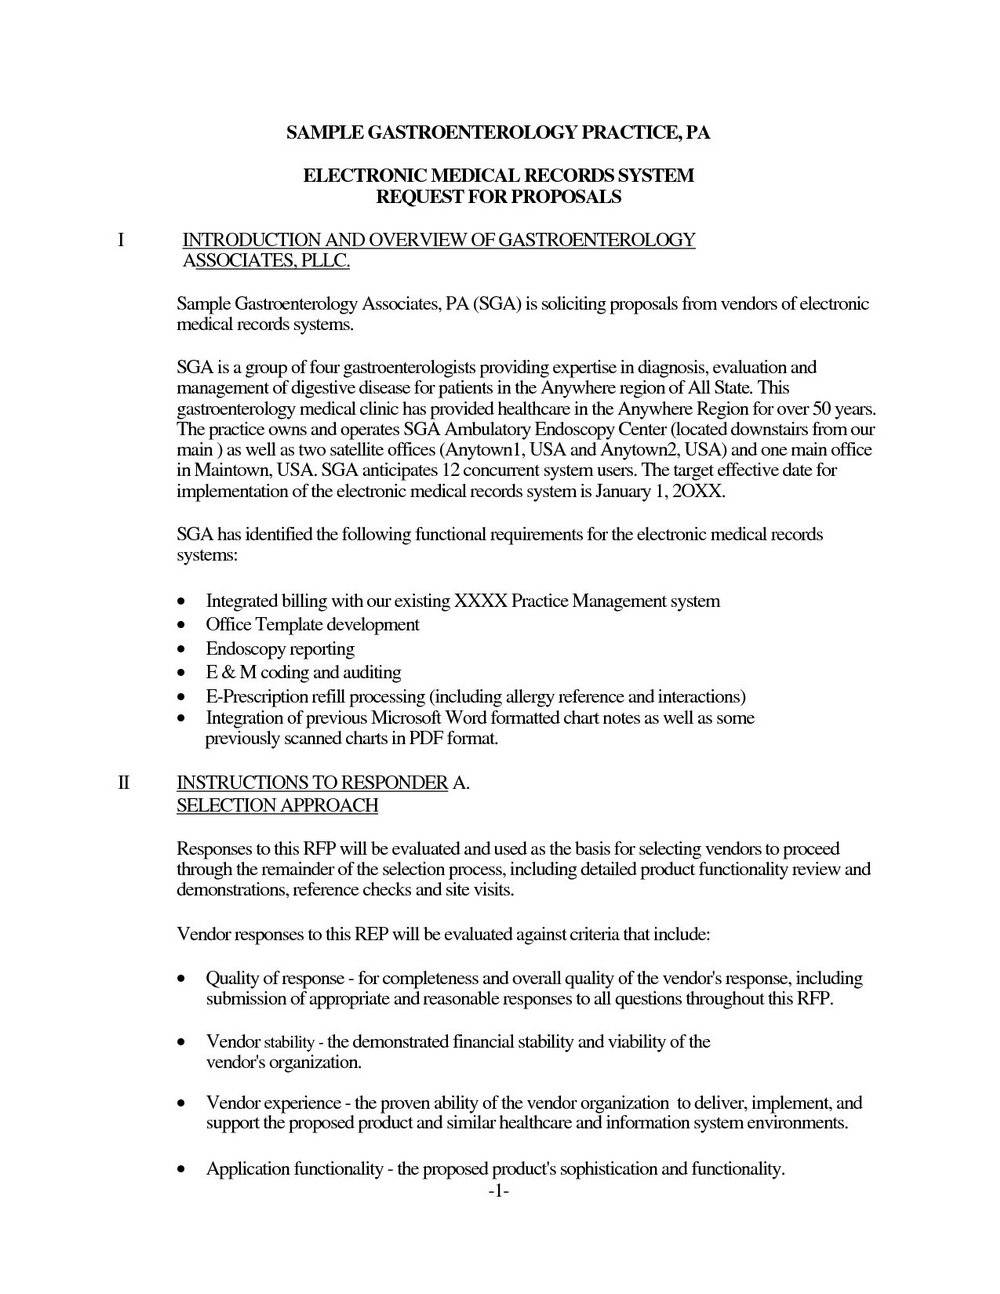 Rfp Response Template Email